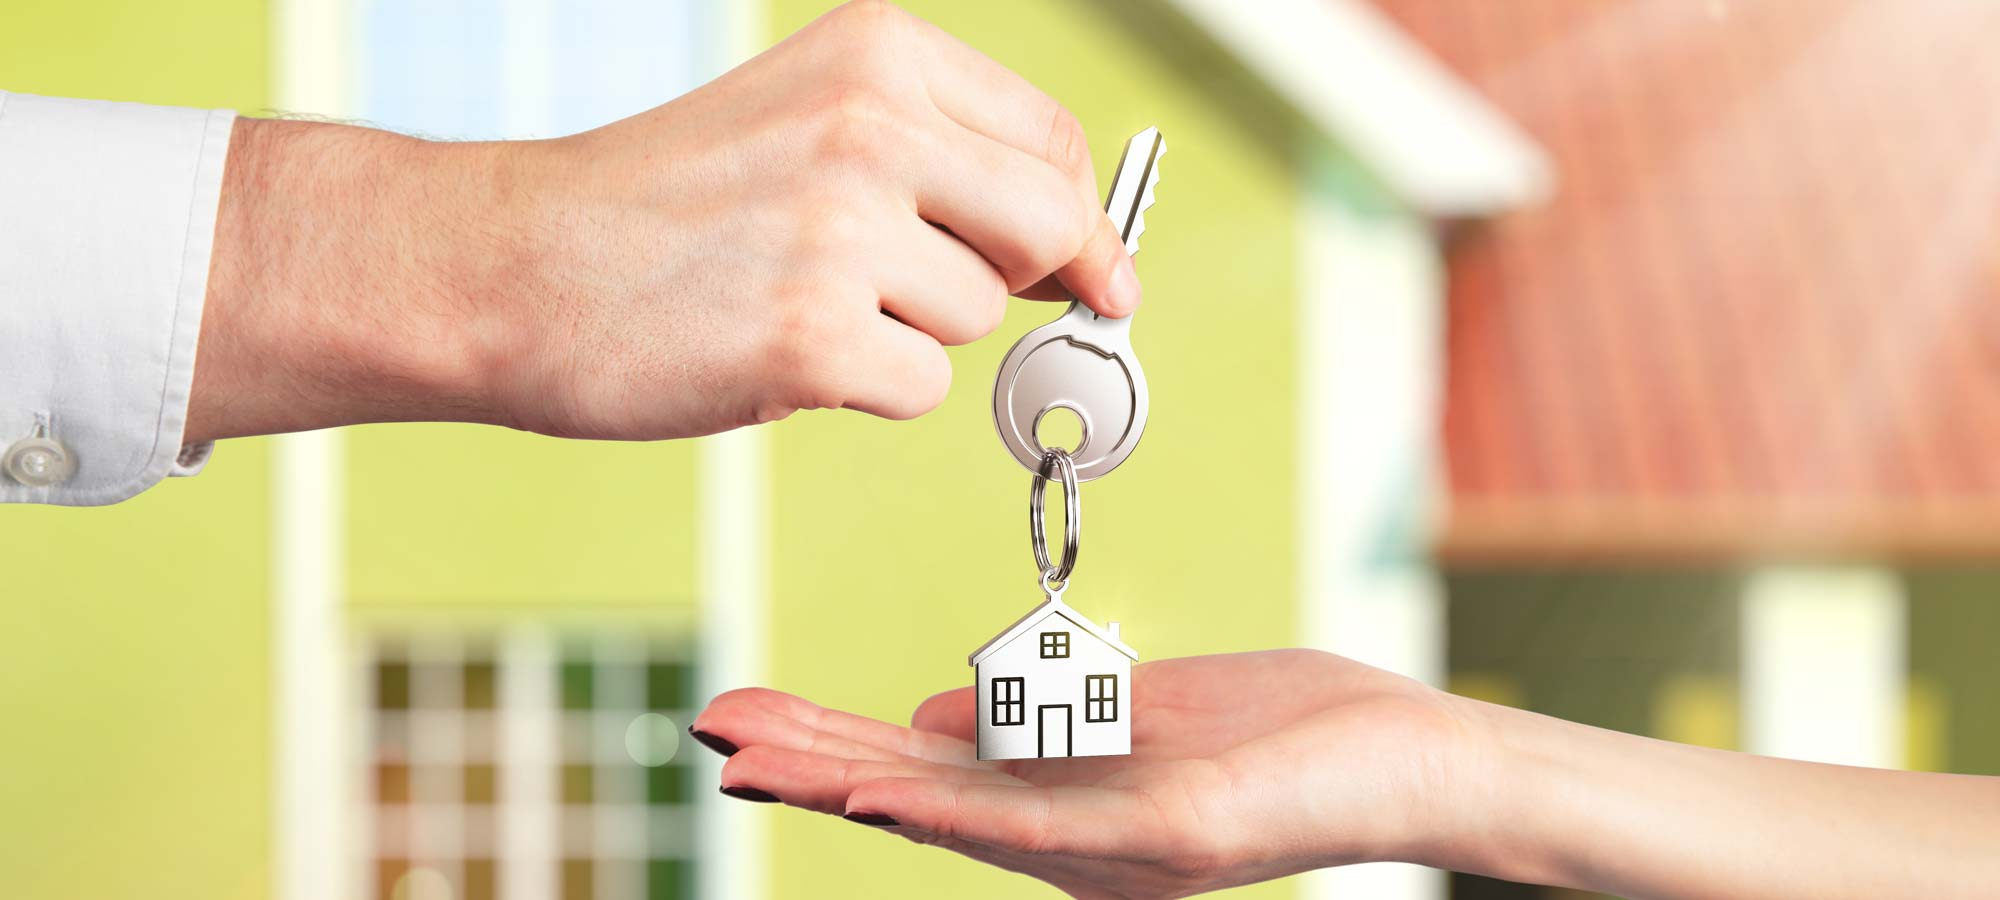 Issues of Rental Homes